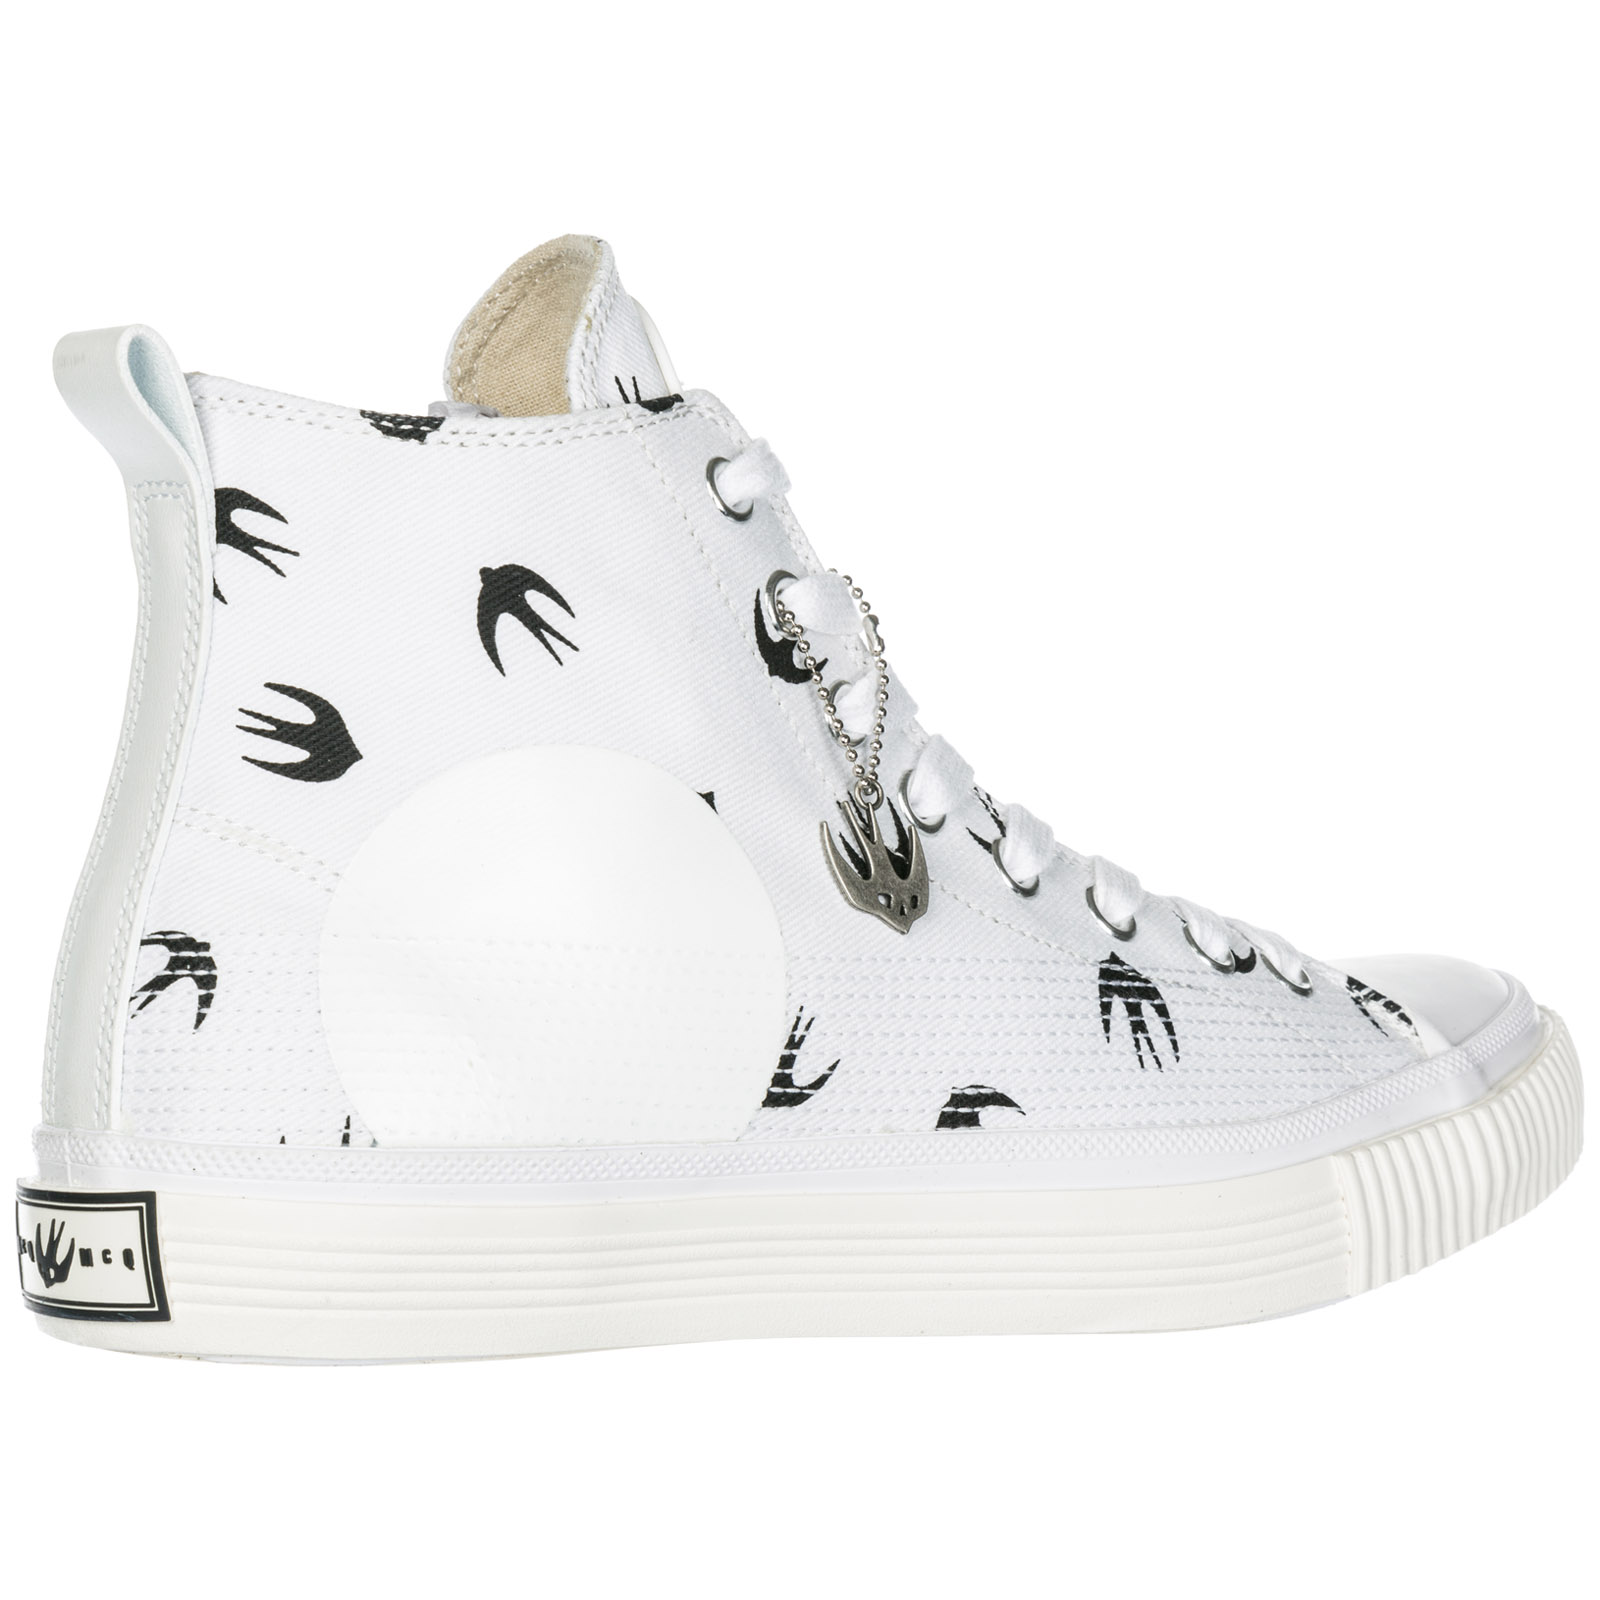 Men's shoes high top trainers sneakers plimsoll mini swallow